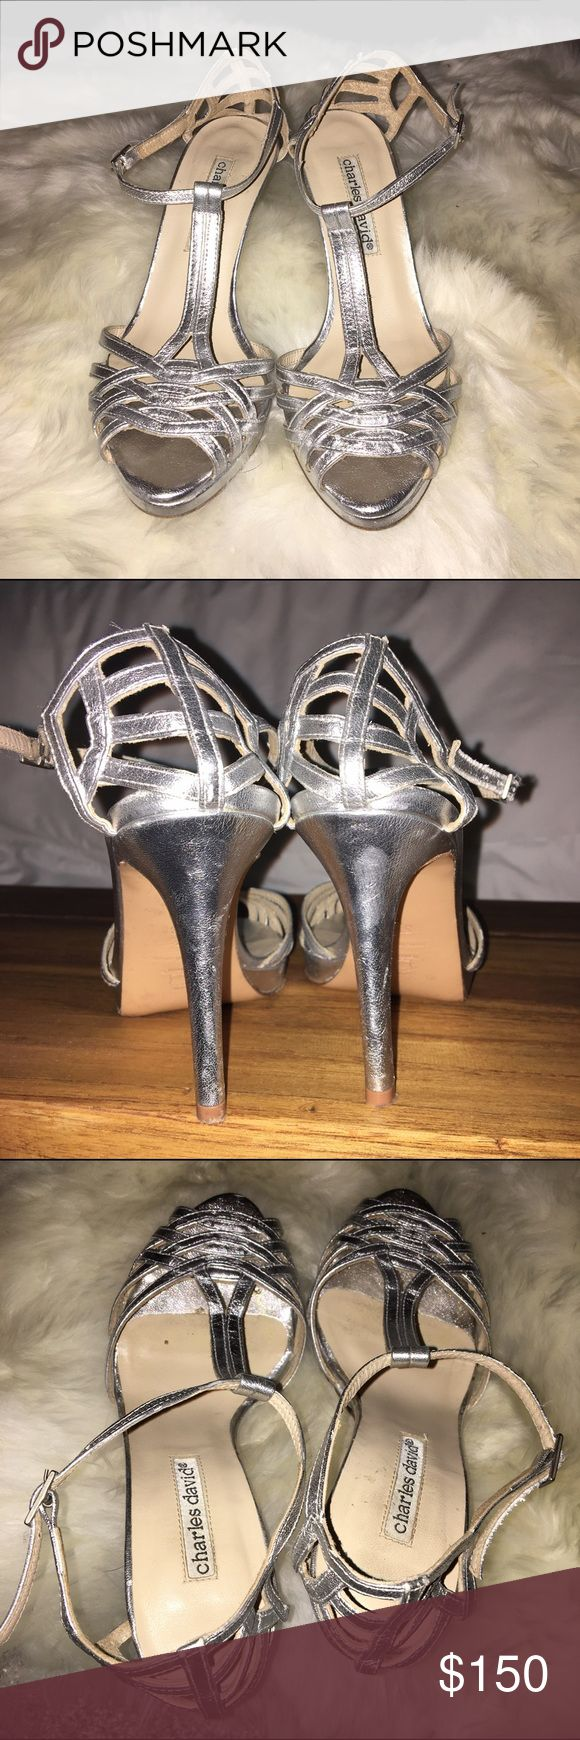 Silver CHARLES DAVID pumps Silver CHARLES DAVID pumps. Work once for an hour. Like brand new. Charles David Shoes Heels